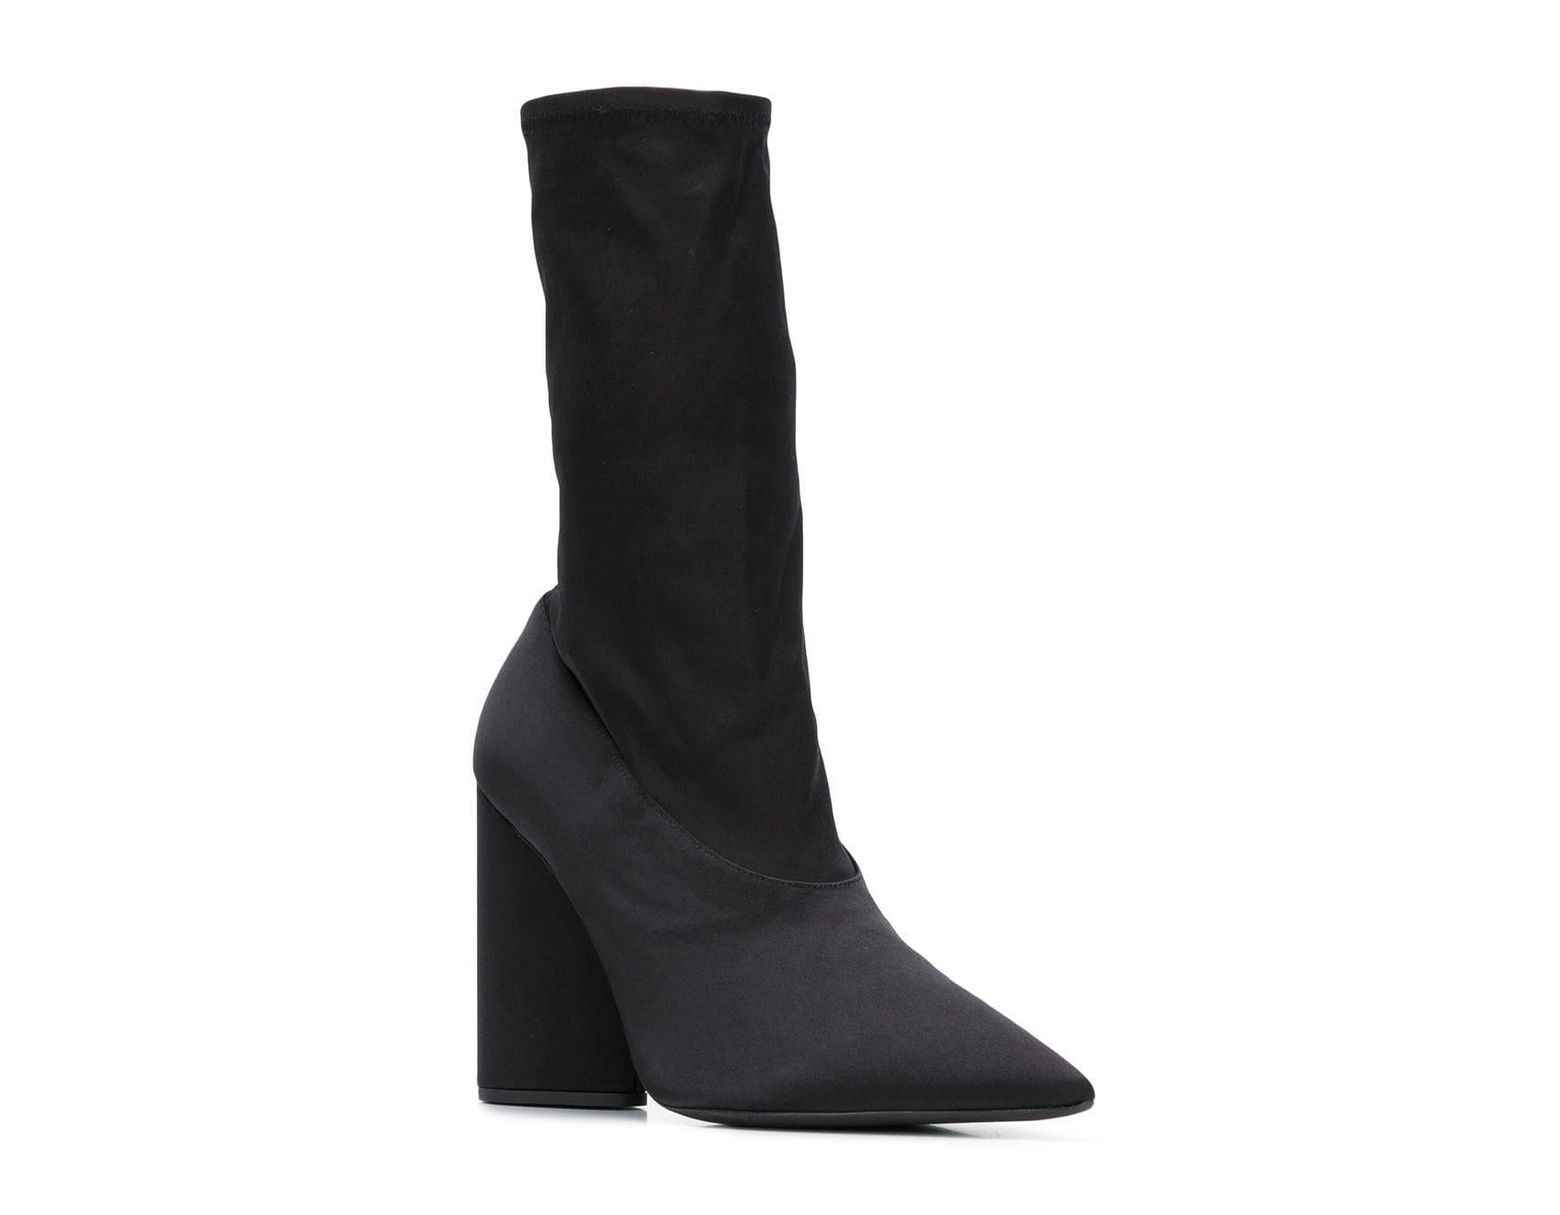 62c91be87f5a Lyst - Yeezy Pointed Block Heel Sock Boots in Black - Save 47%